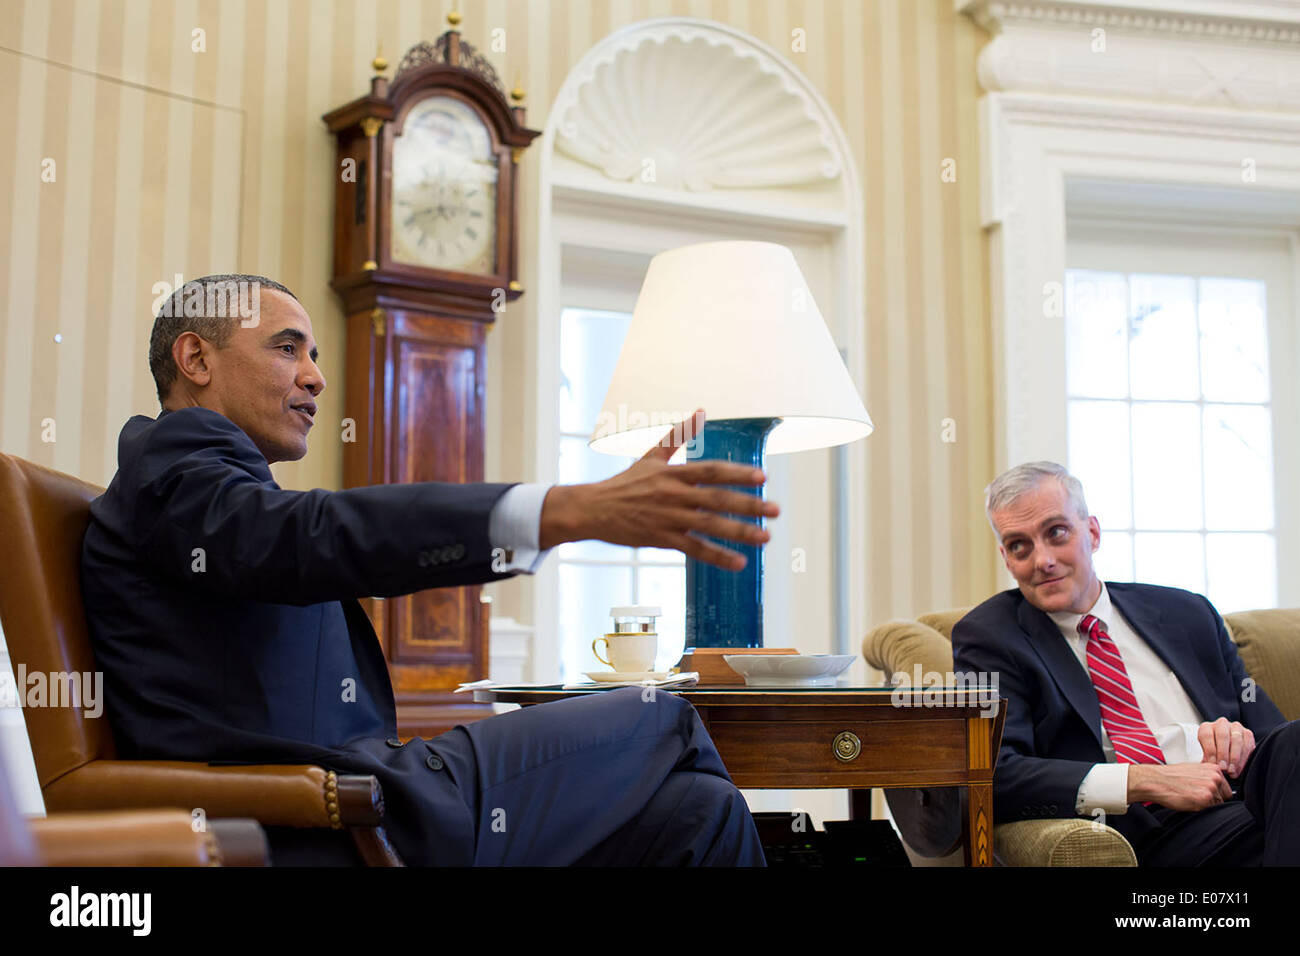 US President Barack Obama gestures during a meeting with Chief of Staff Denis McDonough in the Oval Office of the White House January 6, 2014 in Washington, DC. - Stock Image